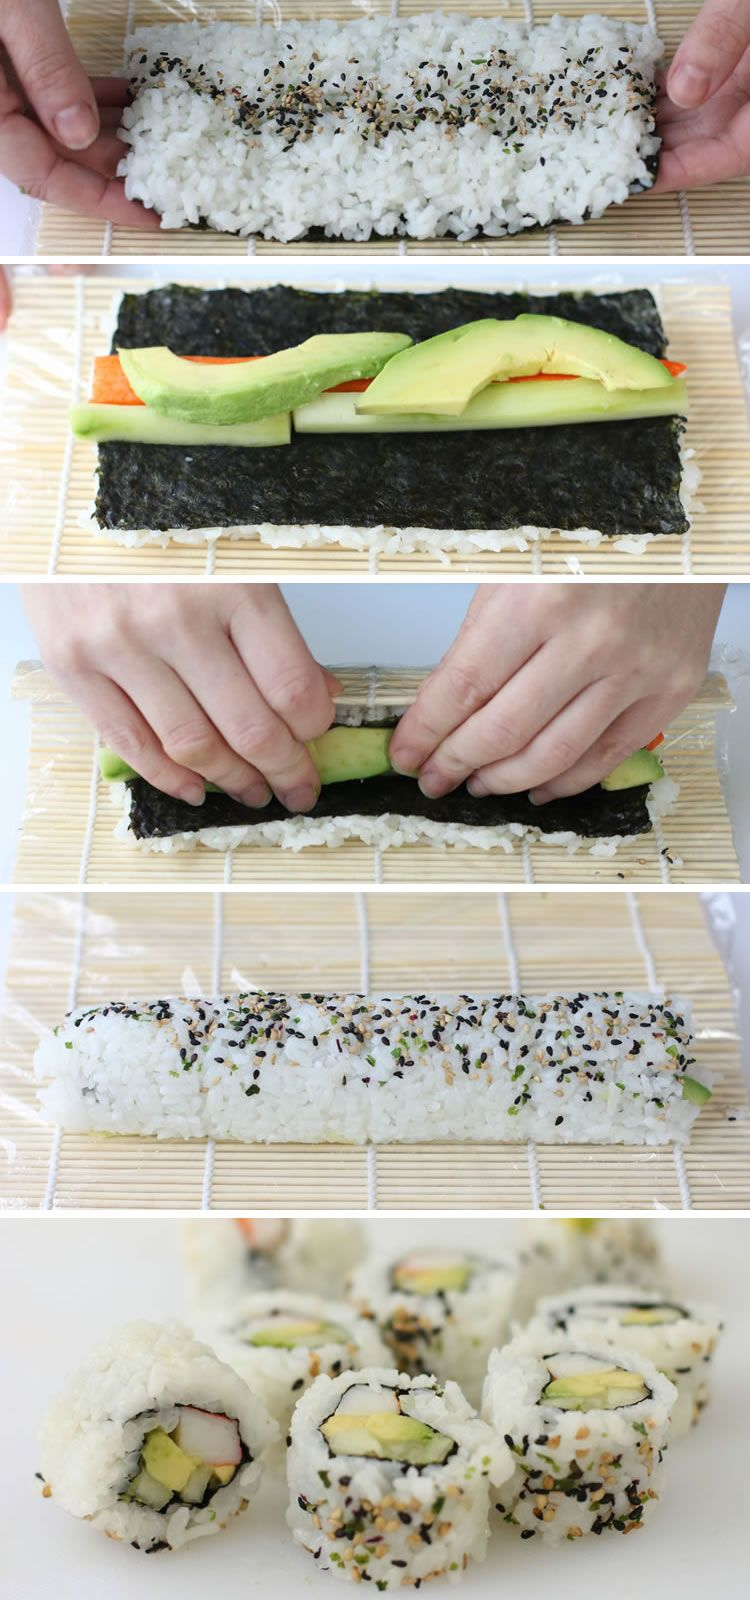 Making Sushi Rolls For Your Holiday Party Is Easy! Here's How. #easythingstocook